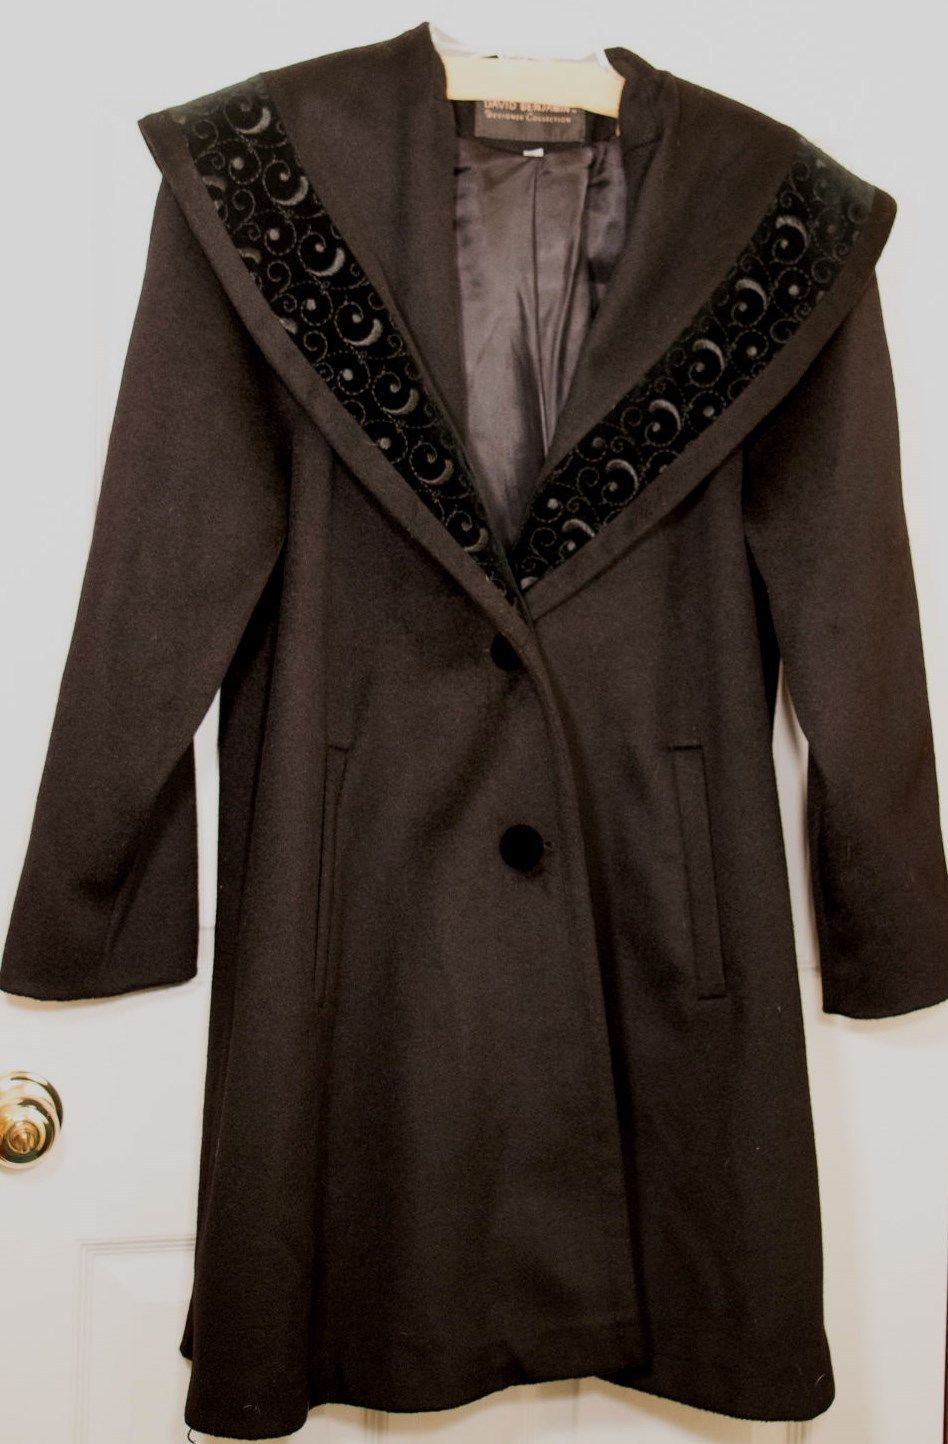 DAVID BENJAMIN Black Hockanum Wool Stitch Velvet Shawl Collar Women Swing Coat 4